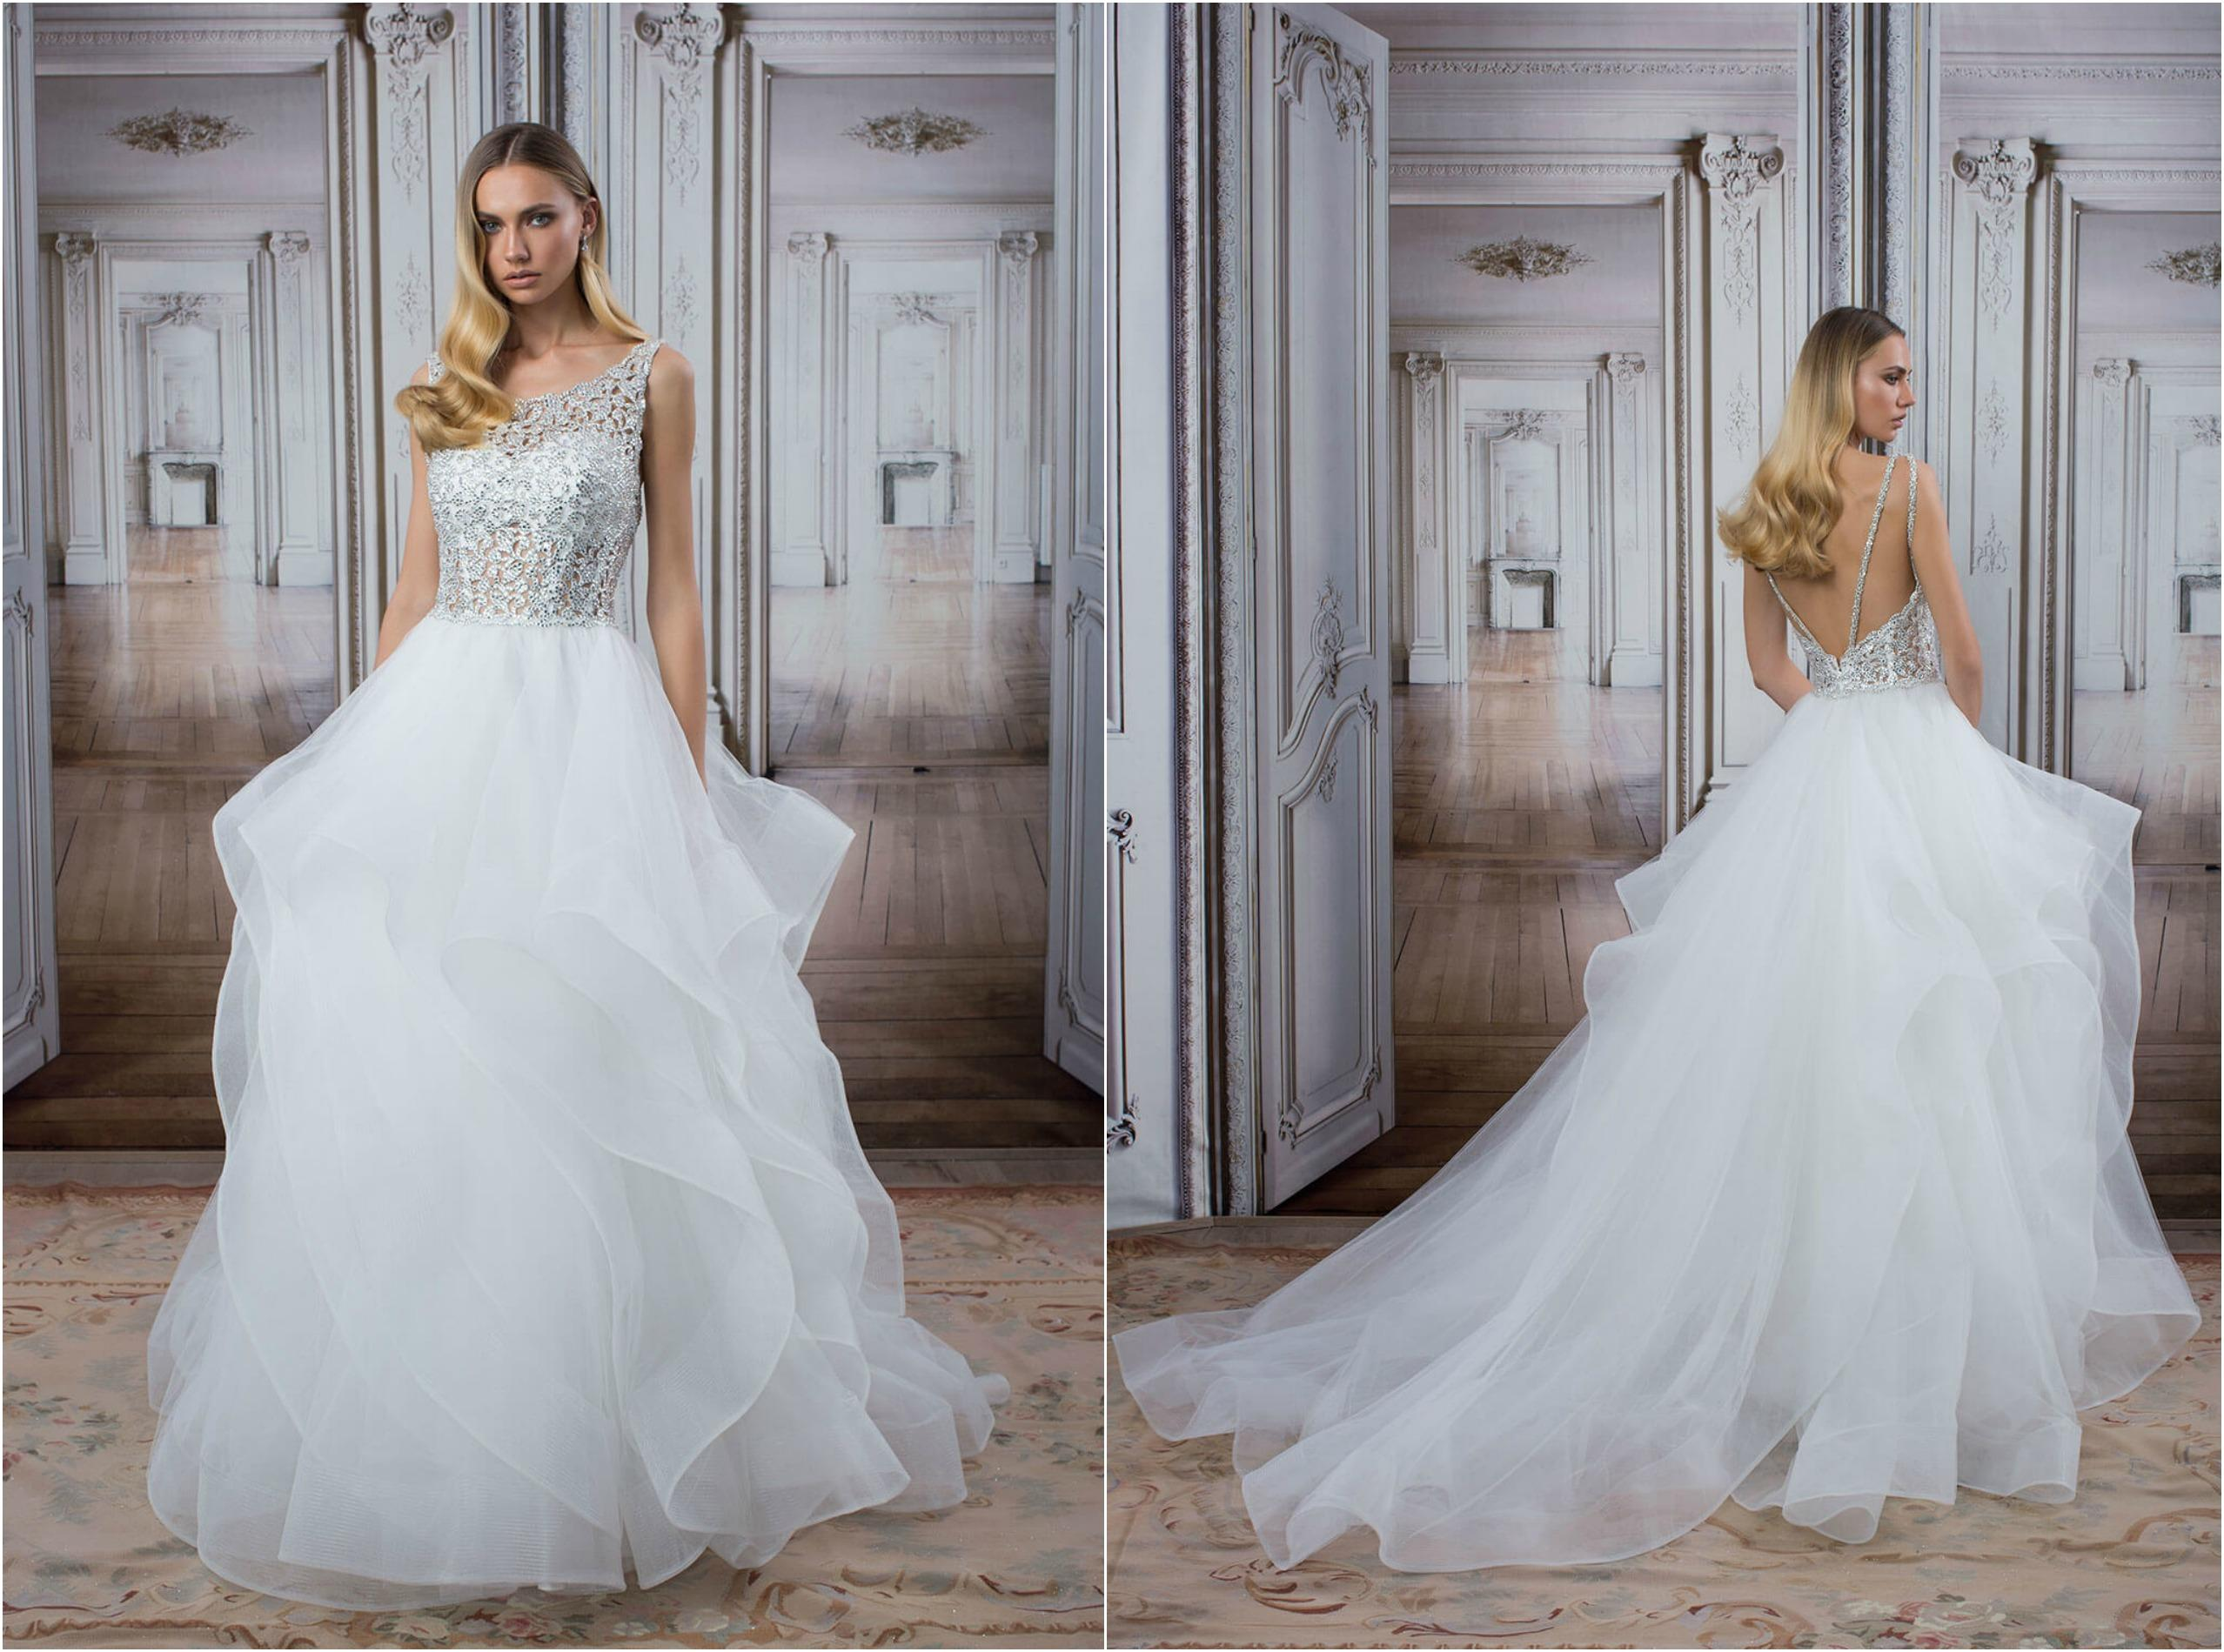 pnina tornai�s 10 most blinged out gowns tlcme tlc